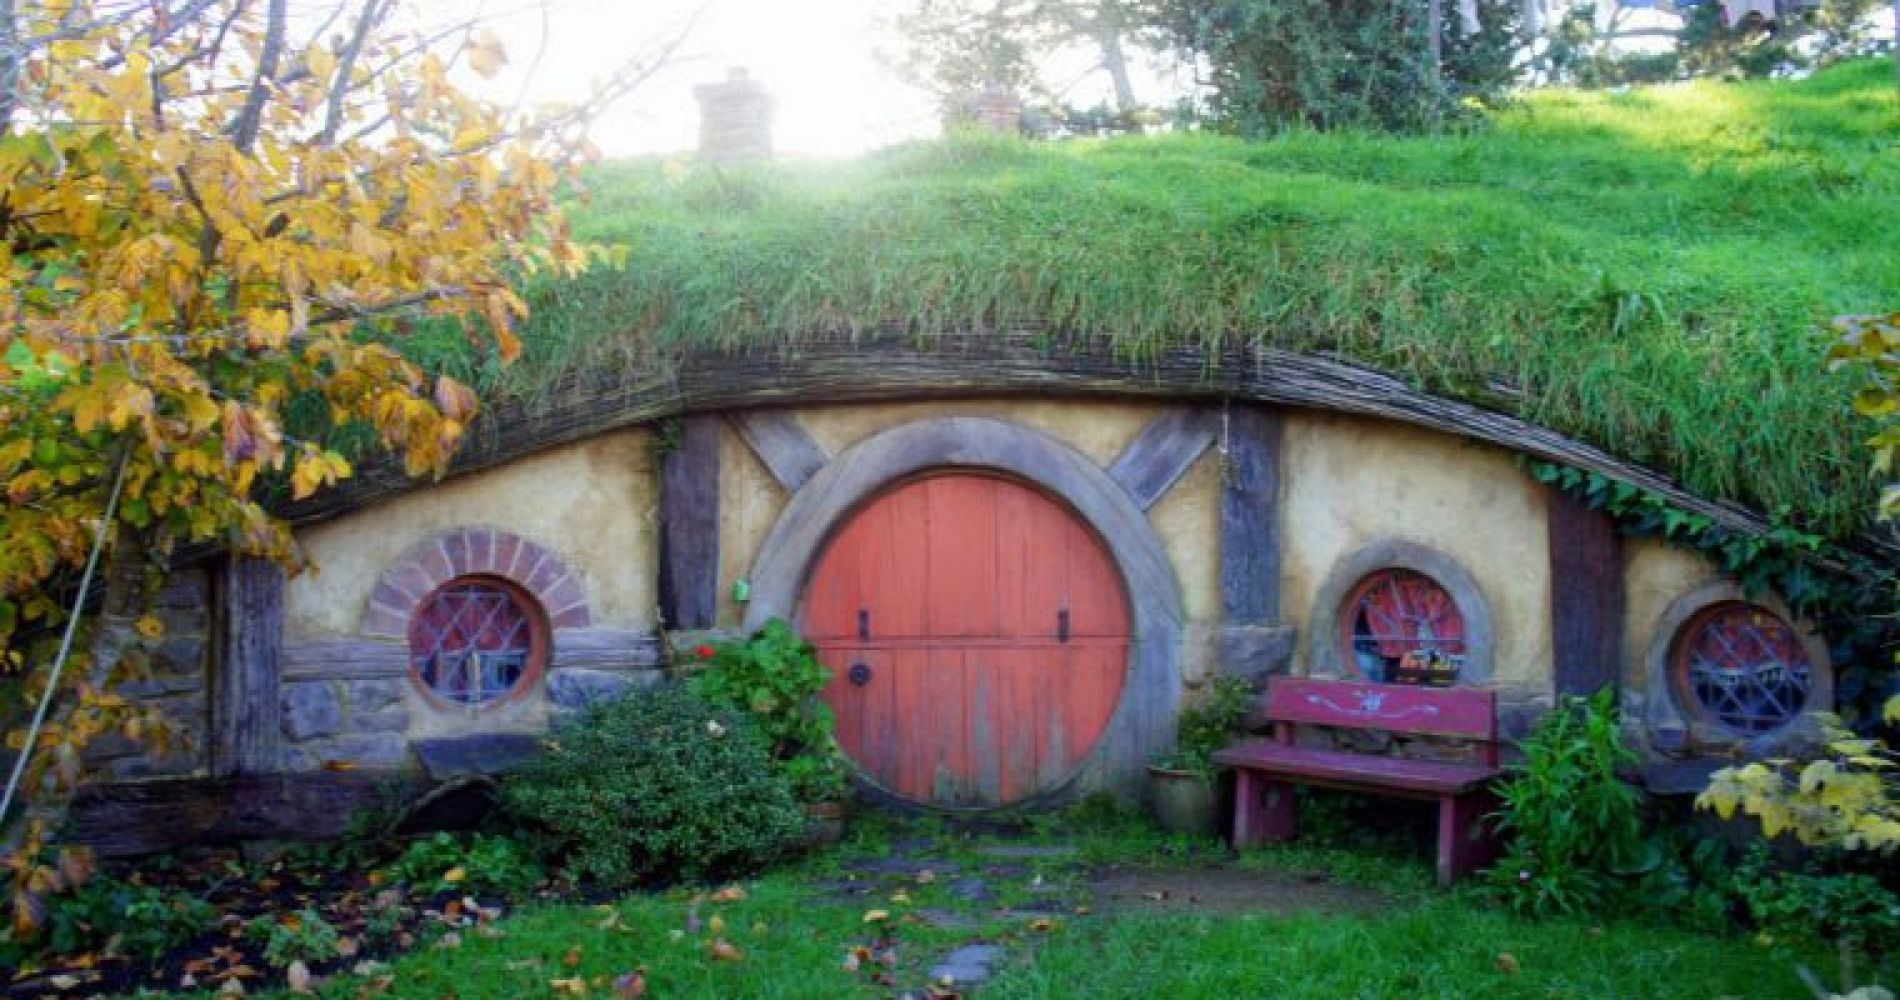 The Hobbit Movie Set Experience from Matamata